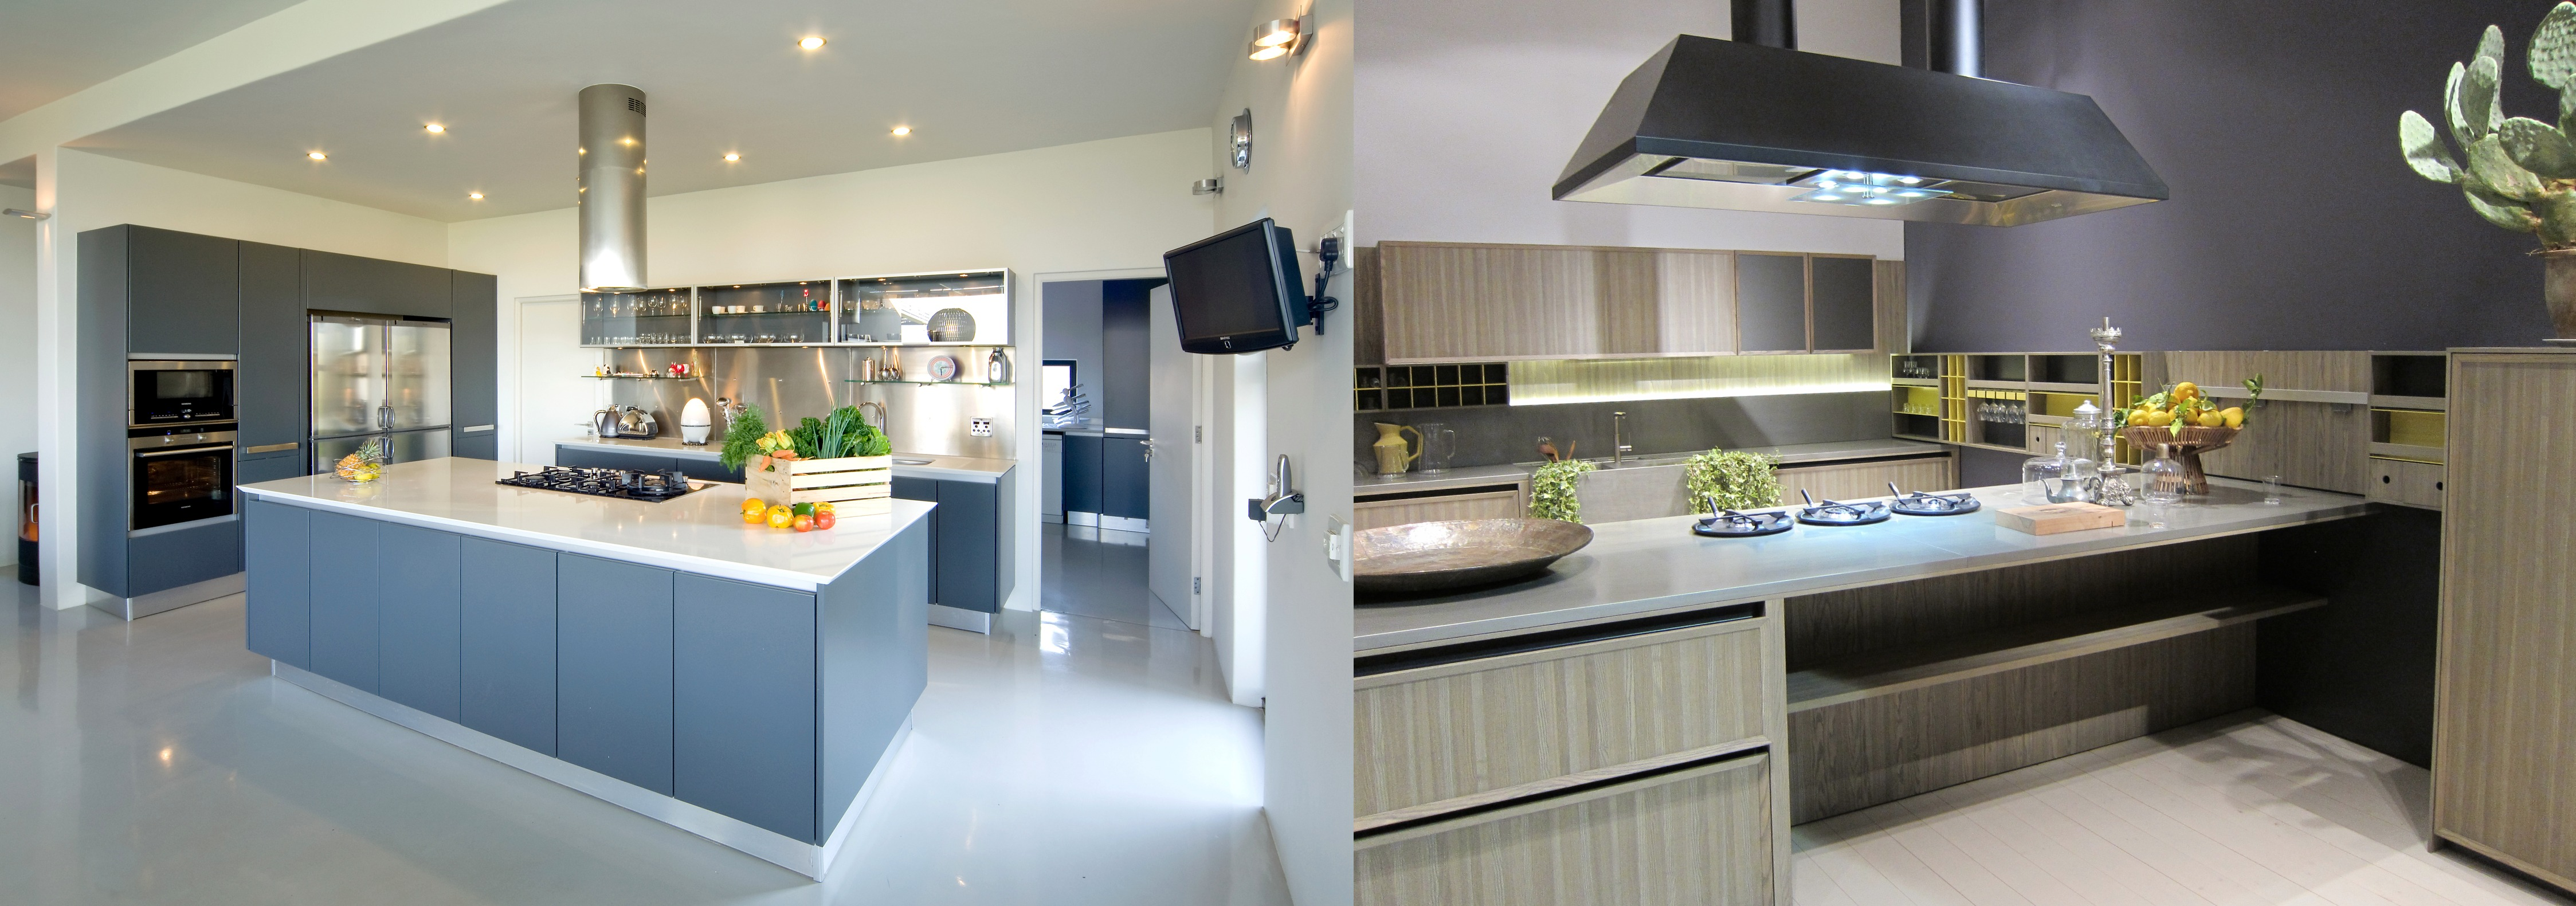 Kitchens Archives Page  Of  SA Home Owner - Kitchen designs sa